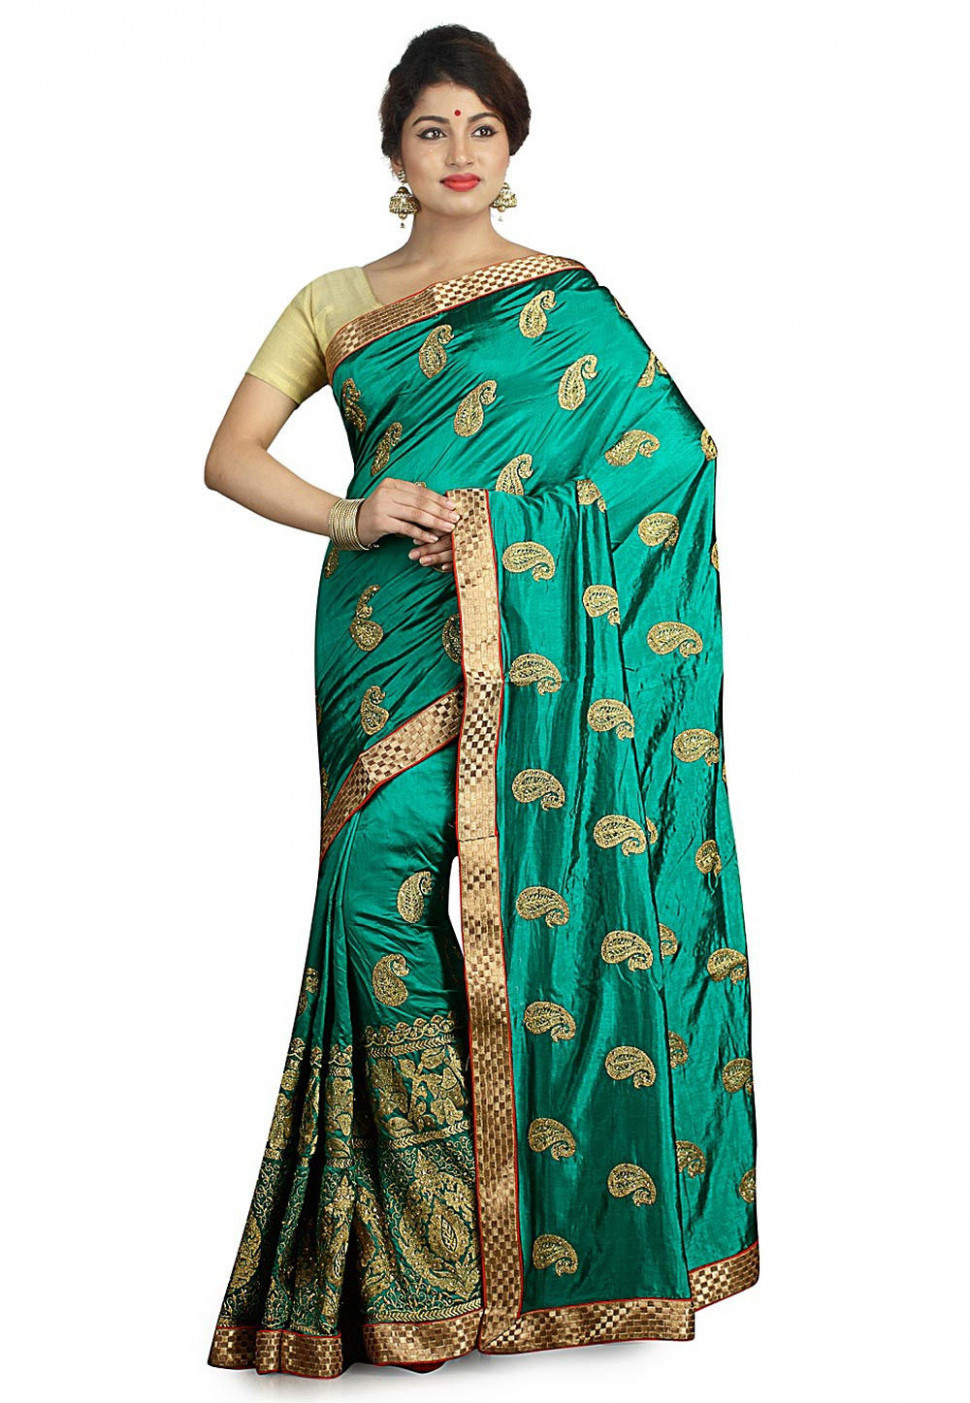 Embroidered Dupion Silk Saree in Teal Green : SUD1446